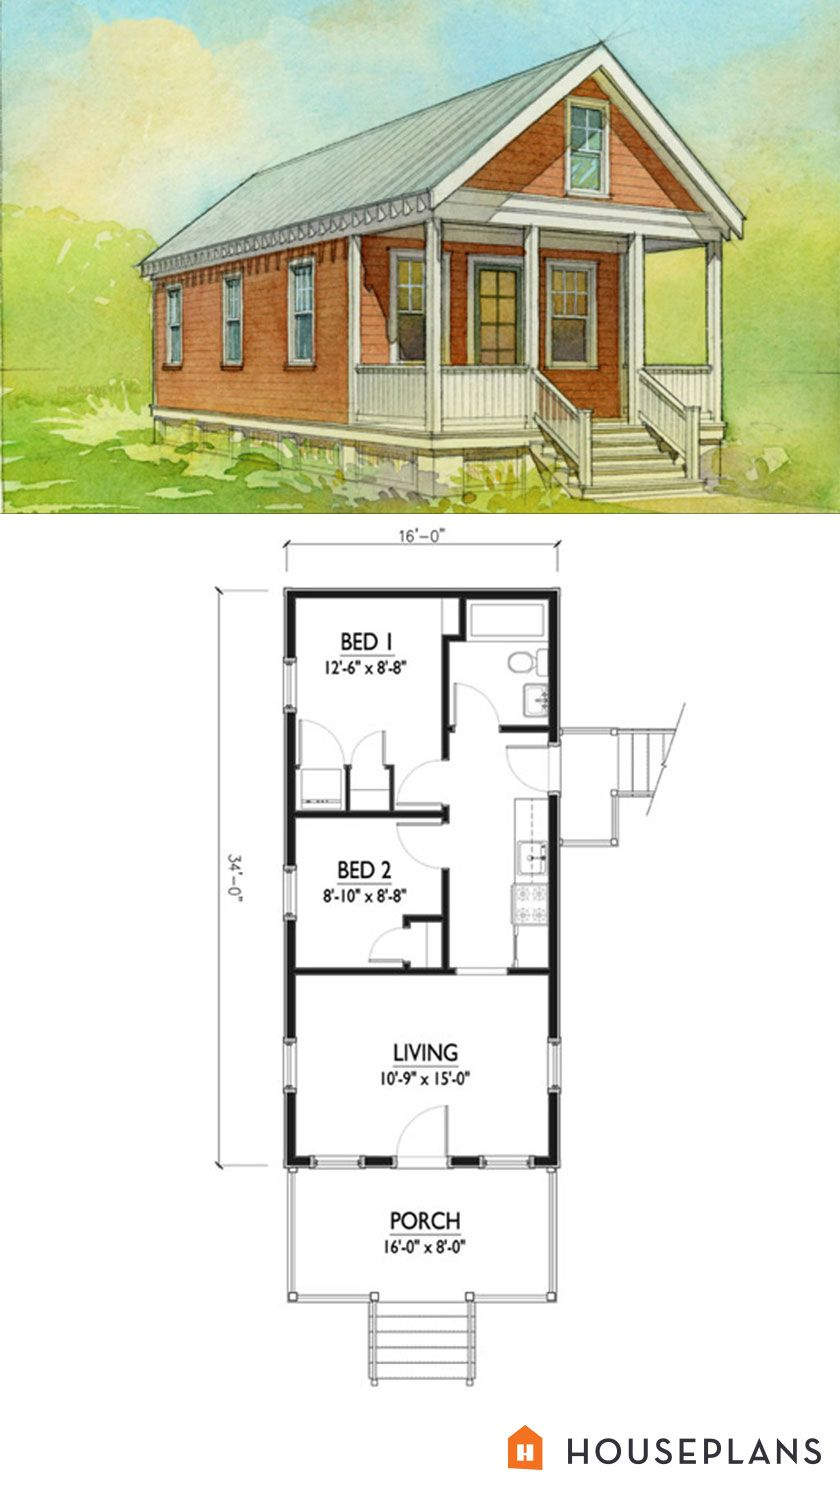 Small katrina cottage house plan 500sft 2br 1 bath by for Small home house plans